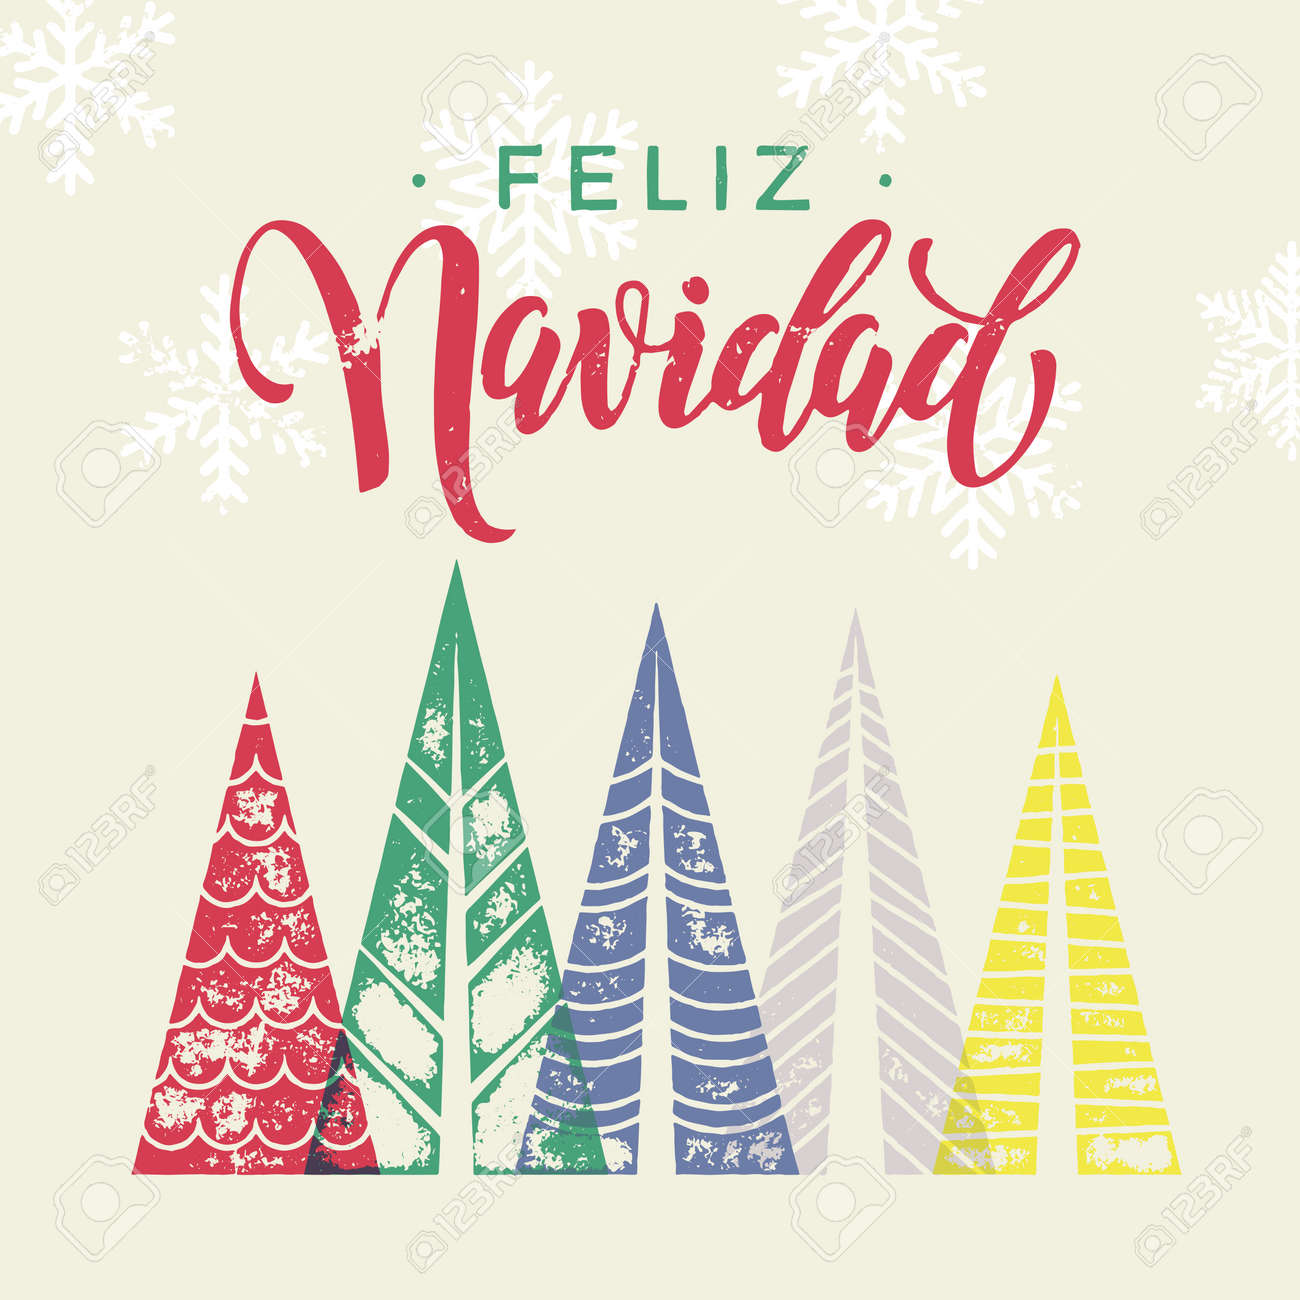 Spanish winter holidays greeting card with text feliz navidad spanish winter holidays greeting card with text feliz navidad and christmas trees forest in geometric m4hsunfo